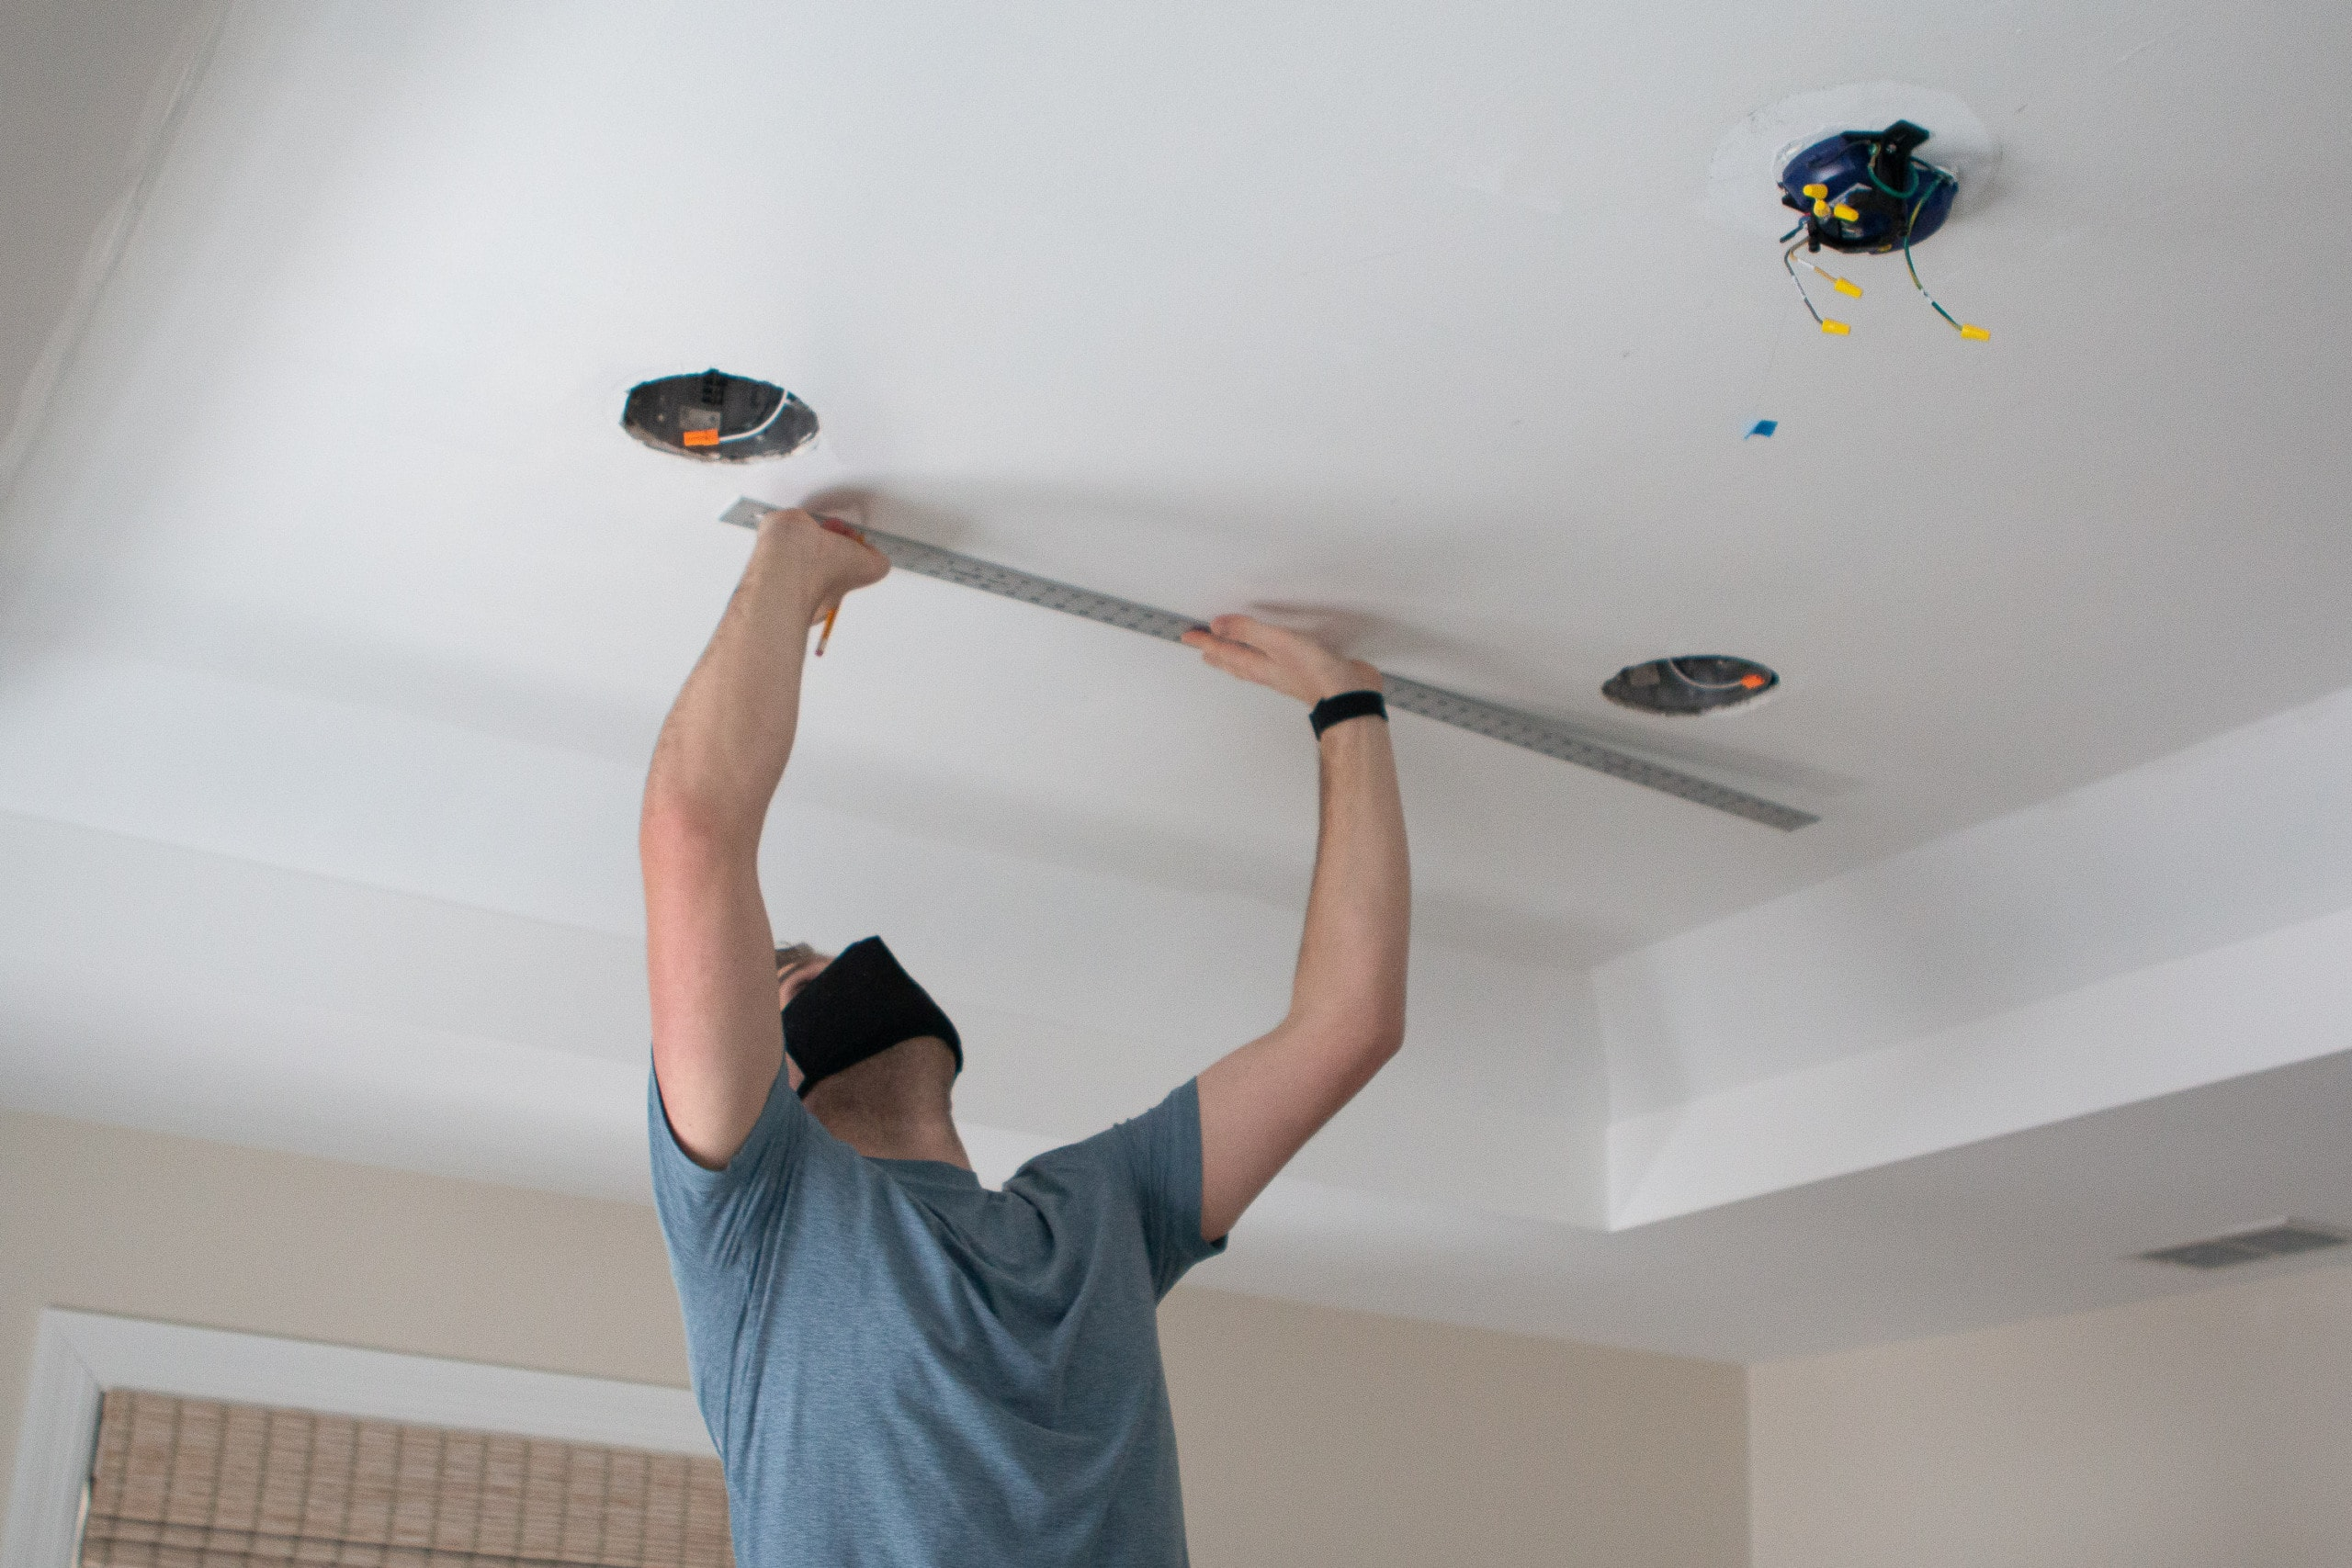 Drawer a straight line across the ceiling